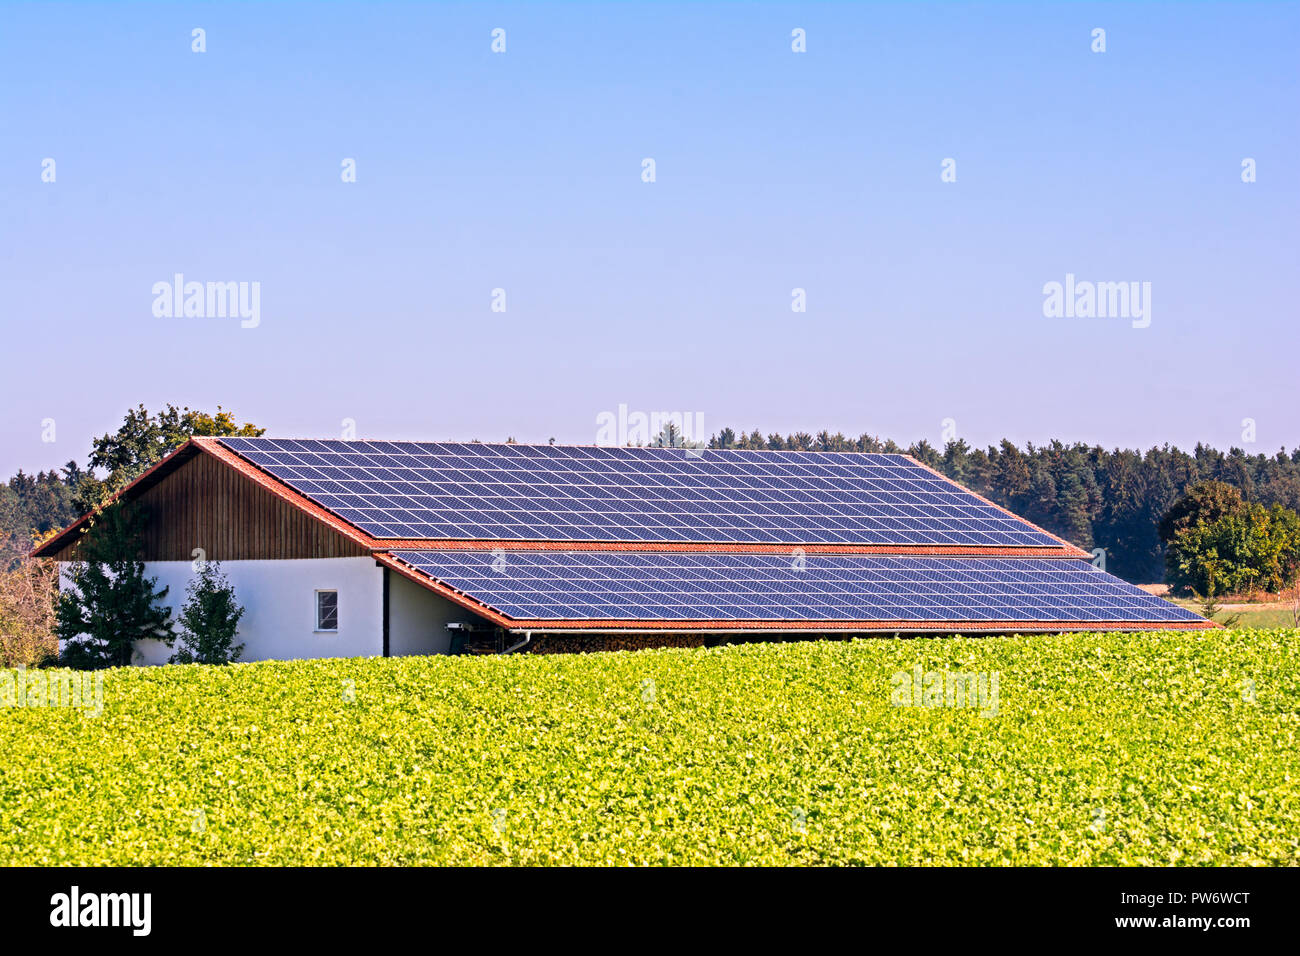 Green energy with solar collectors on the roof of an agricultural building - Stock Image